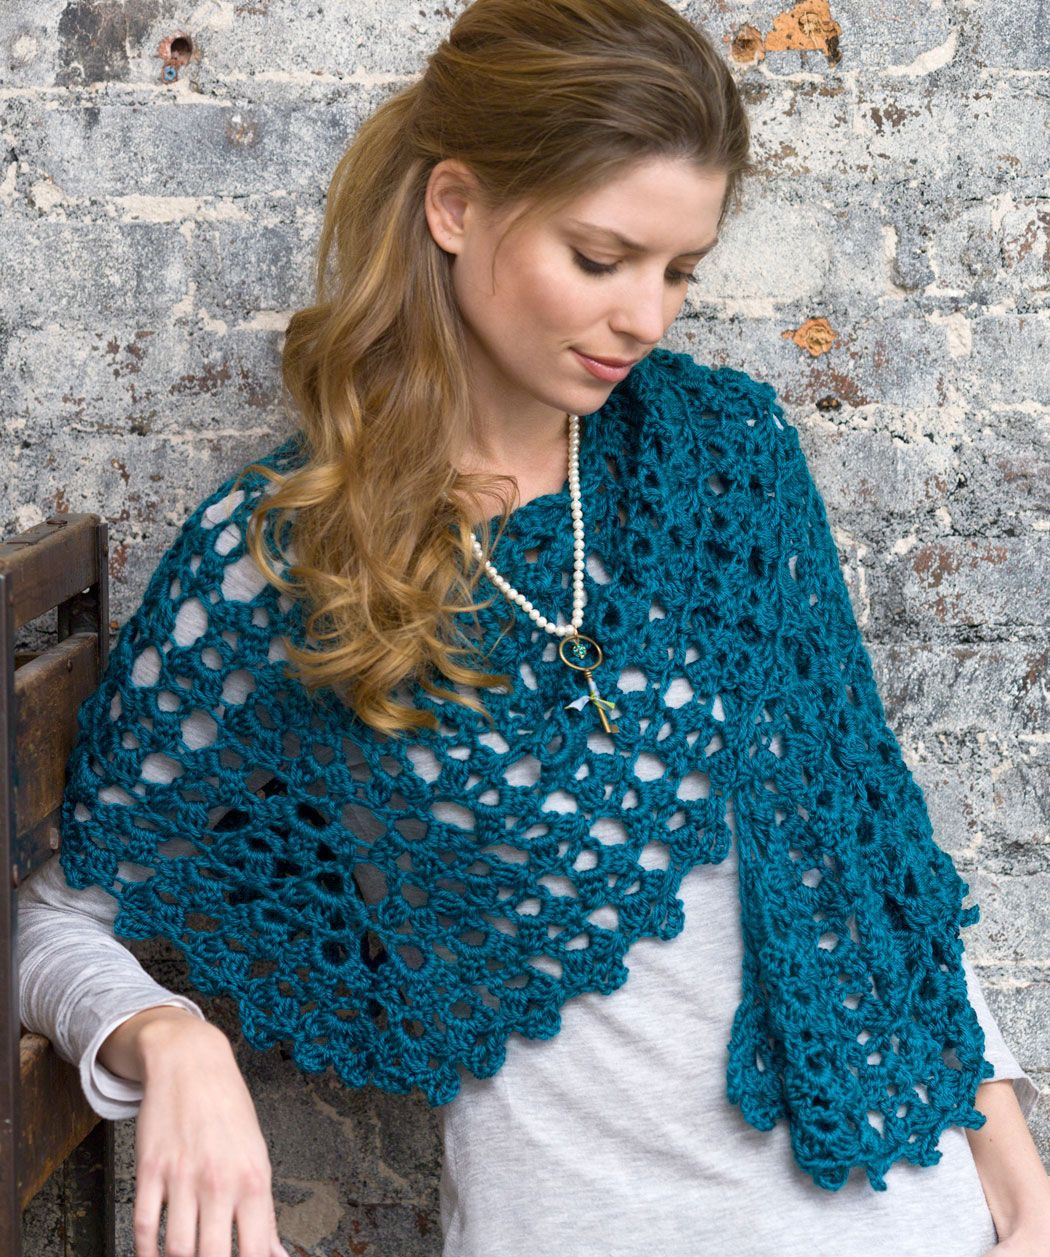 Crochet Shawl Pattern Inspirational Free Crochet Shawl Wrap Patterns On Pinterest Of Wonderful 50 Pics Crochet Shawl Pattern